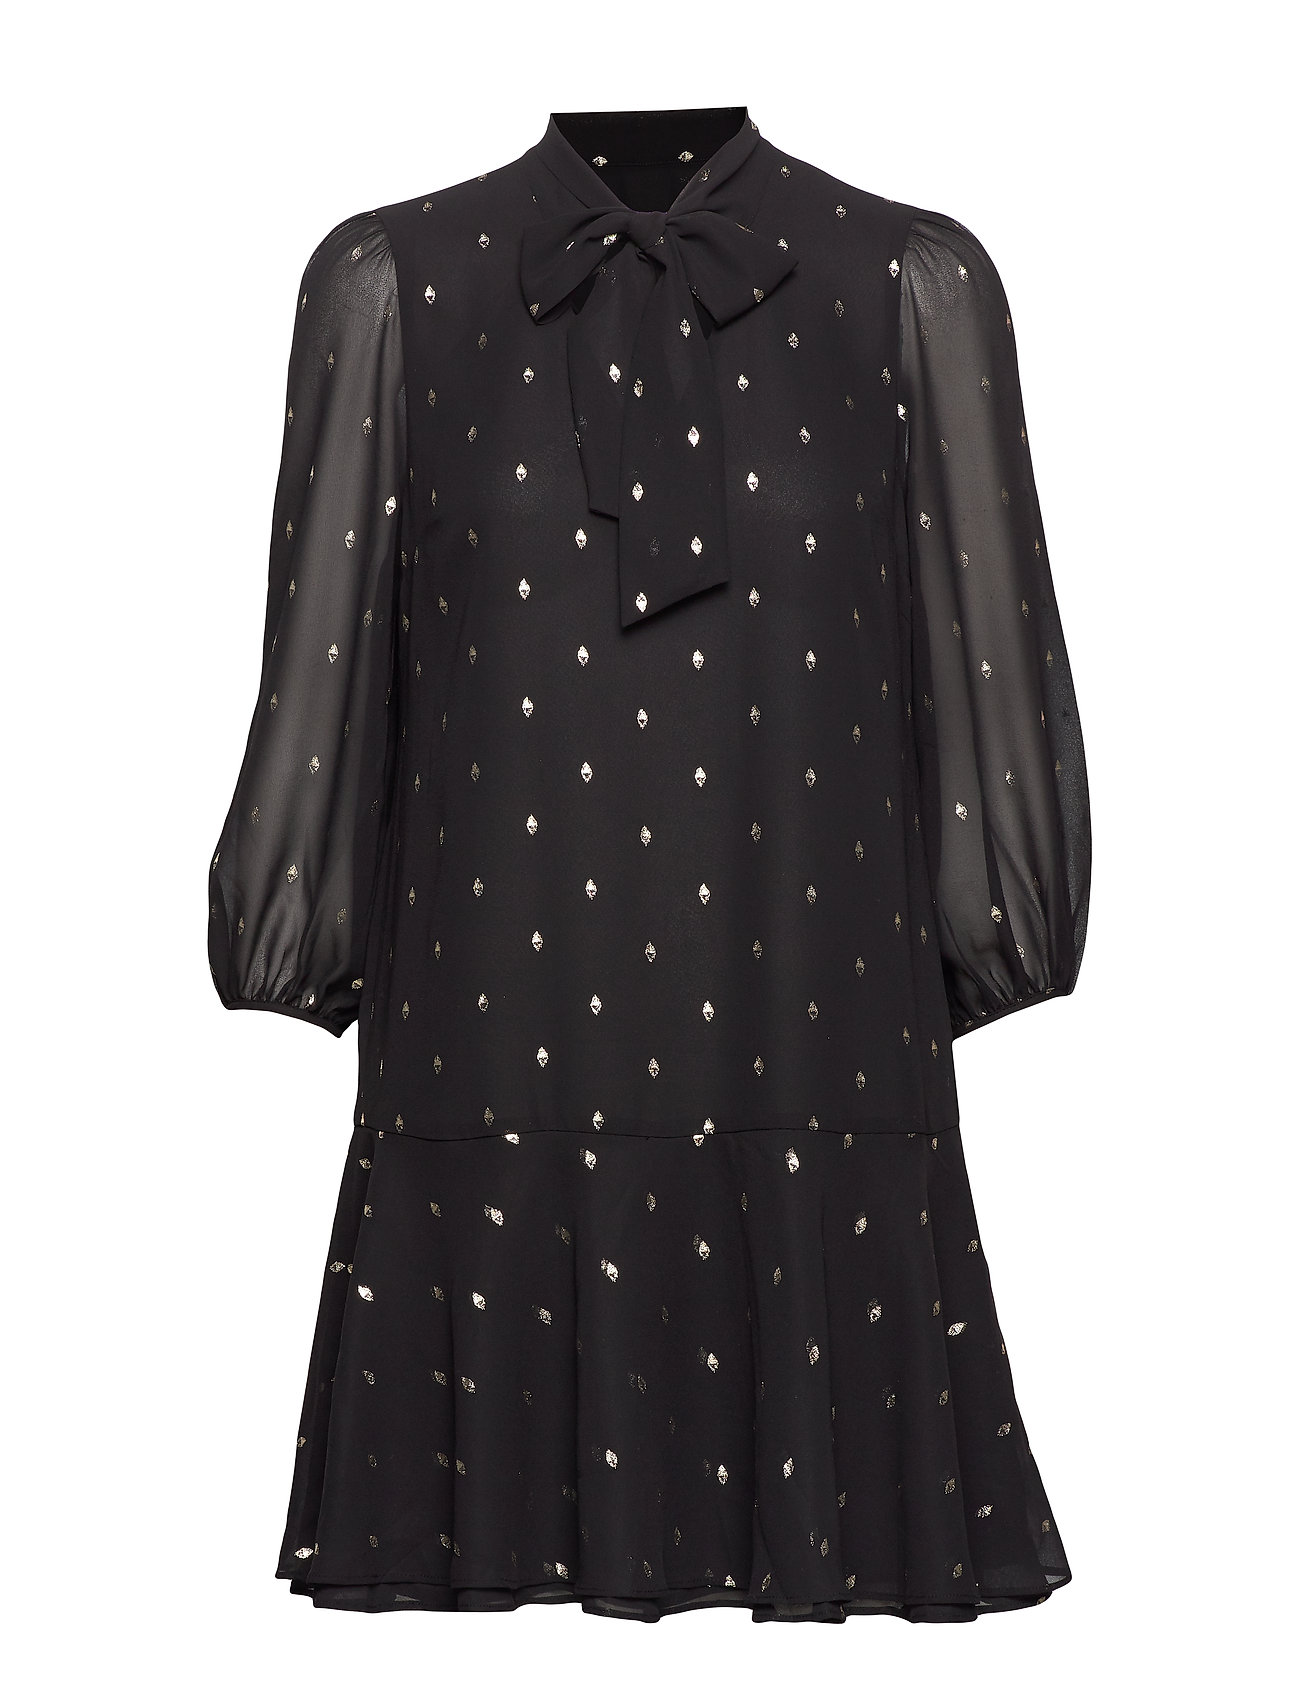 Banana Republic Metallic Dot Tie-Neck Dress - BLACK/GOLD